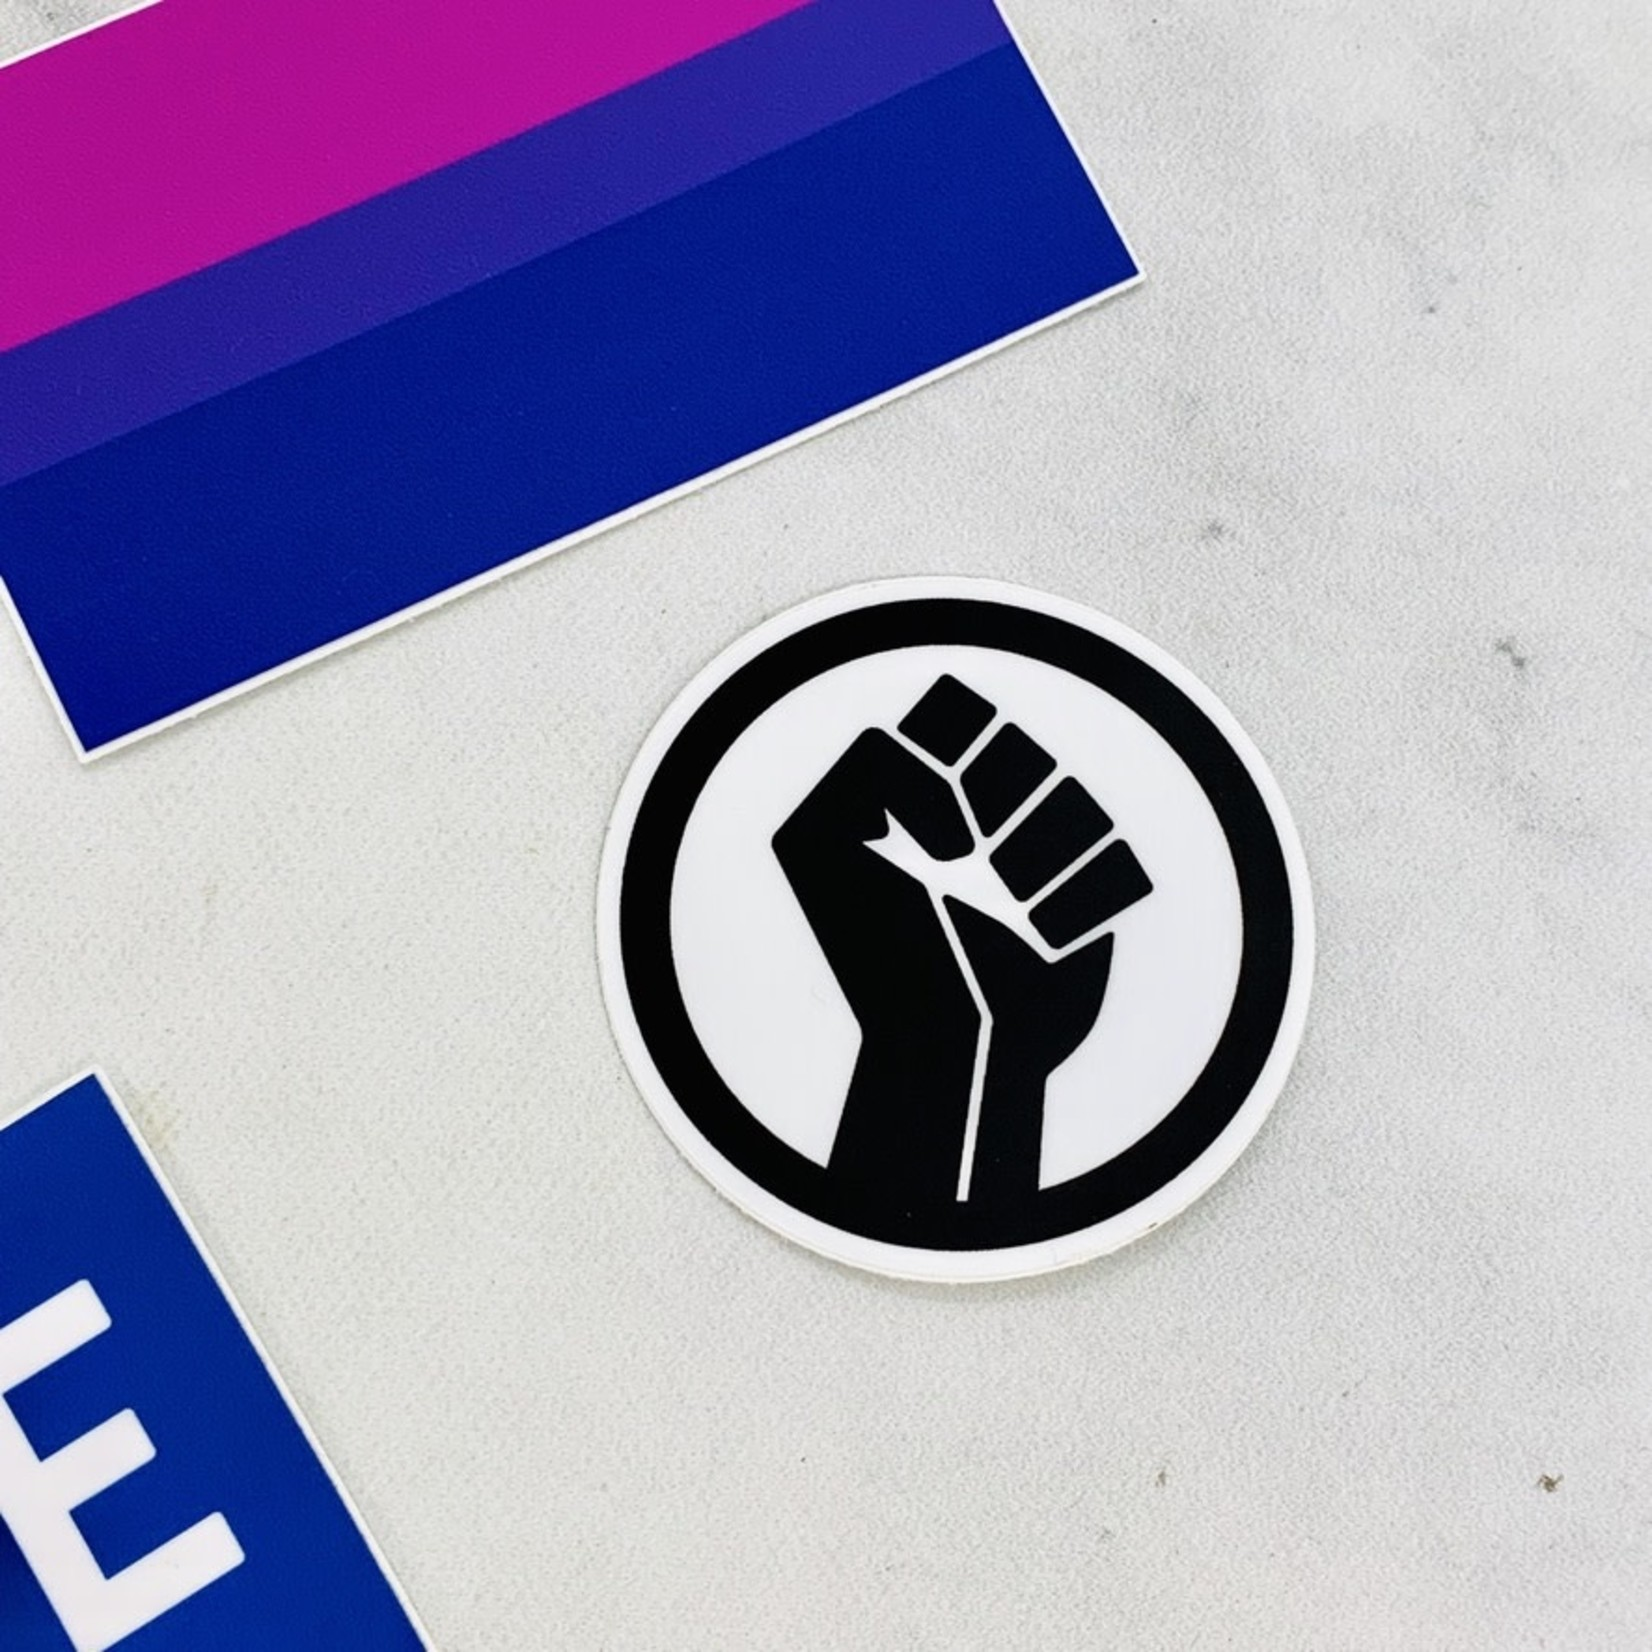 Flags for Good Flags For Good Sticker